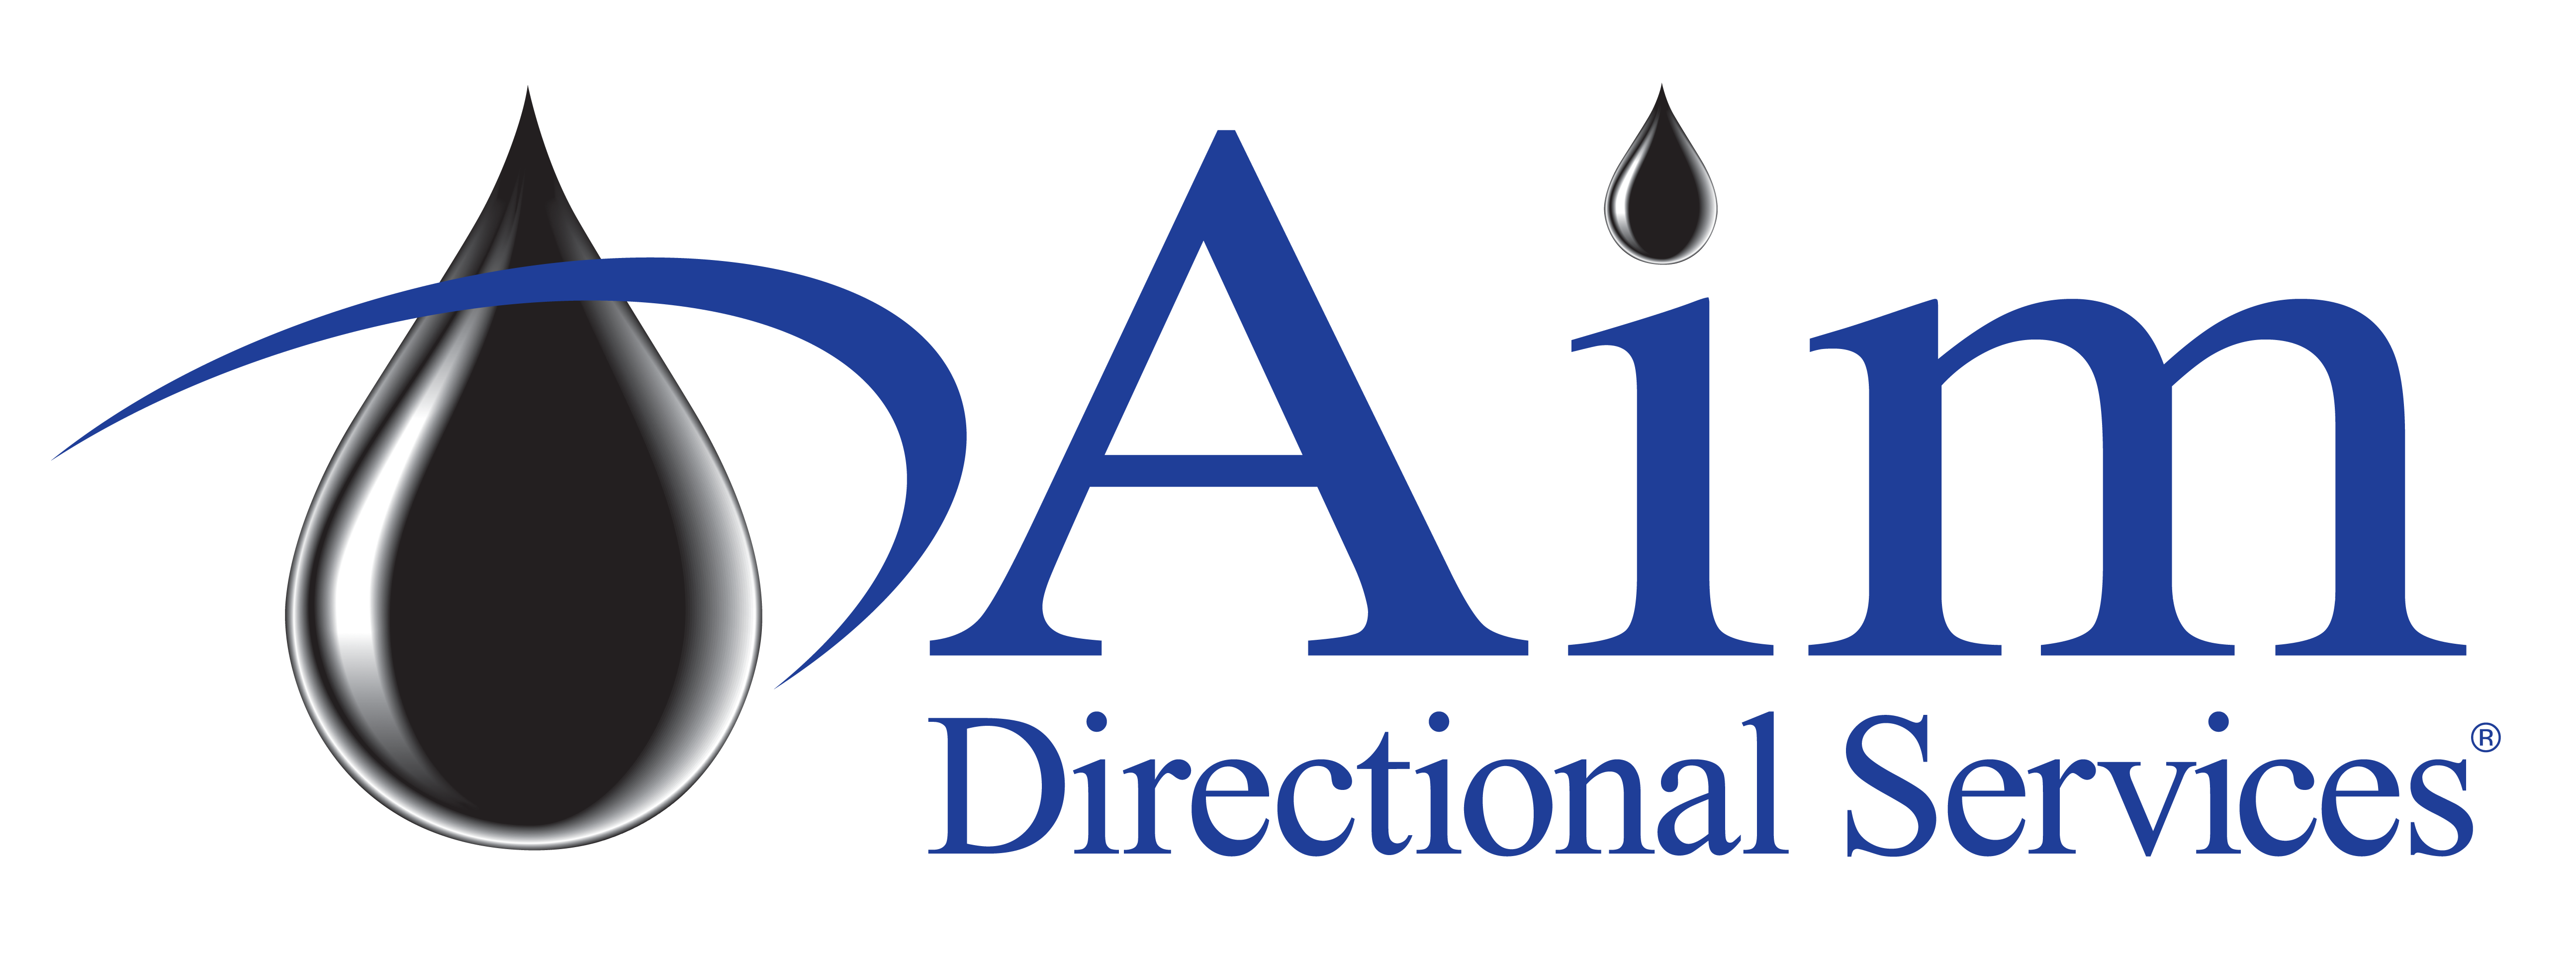 Aim Directional Services